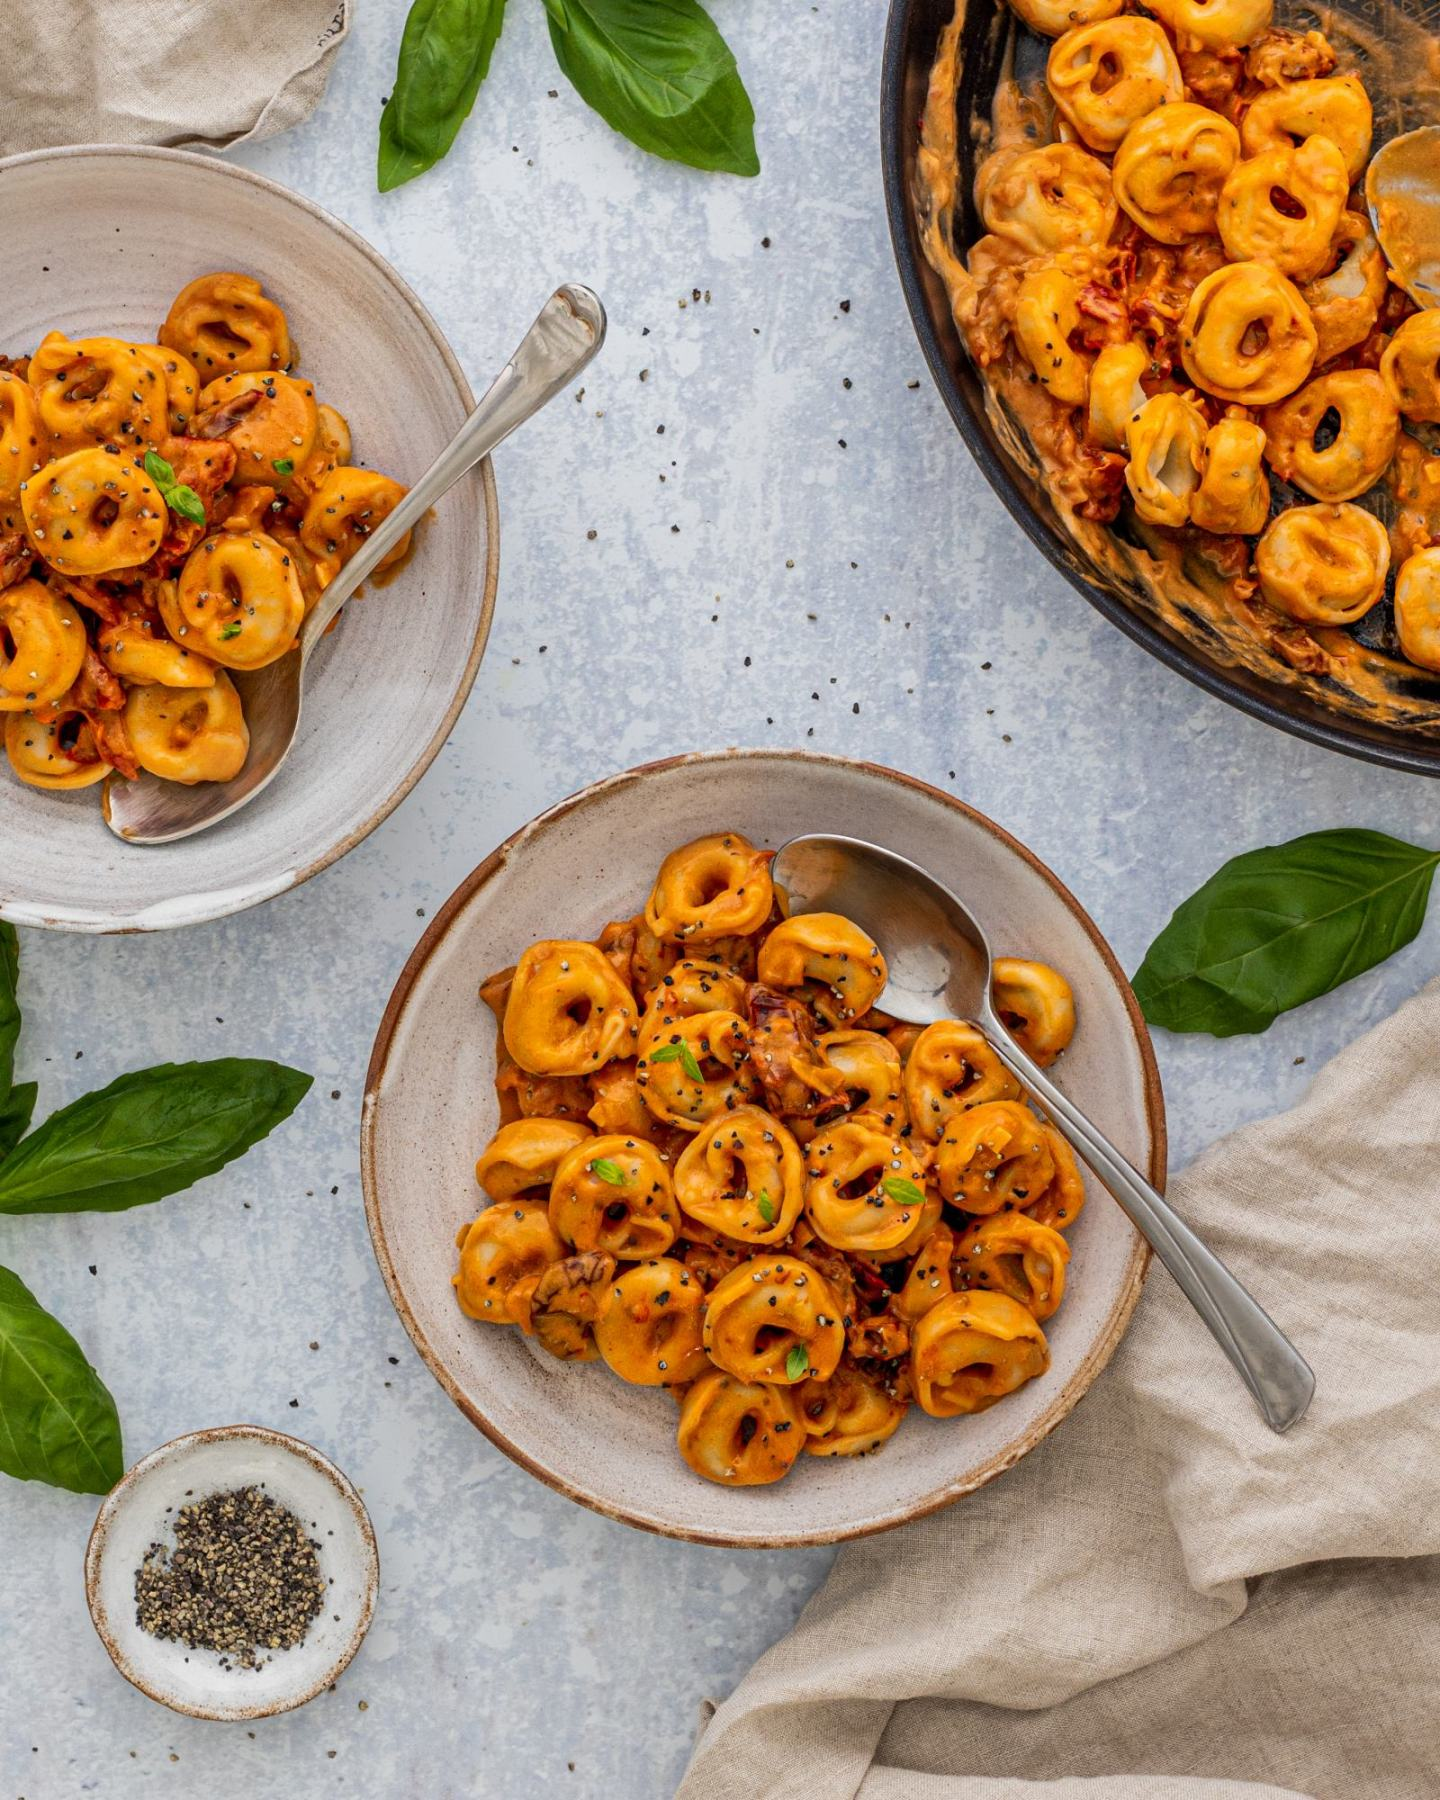 Creamy Sun-Dried Tomato Pasta - Vegan Tortellini served onto 2 plates with the pan standing next to it on a bright table top